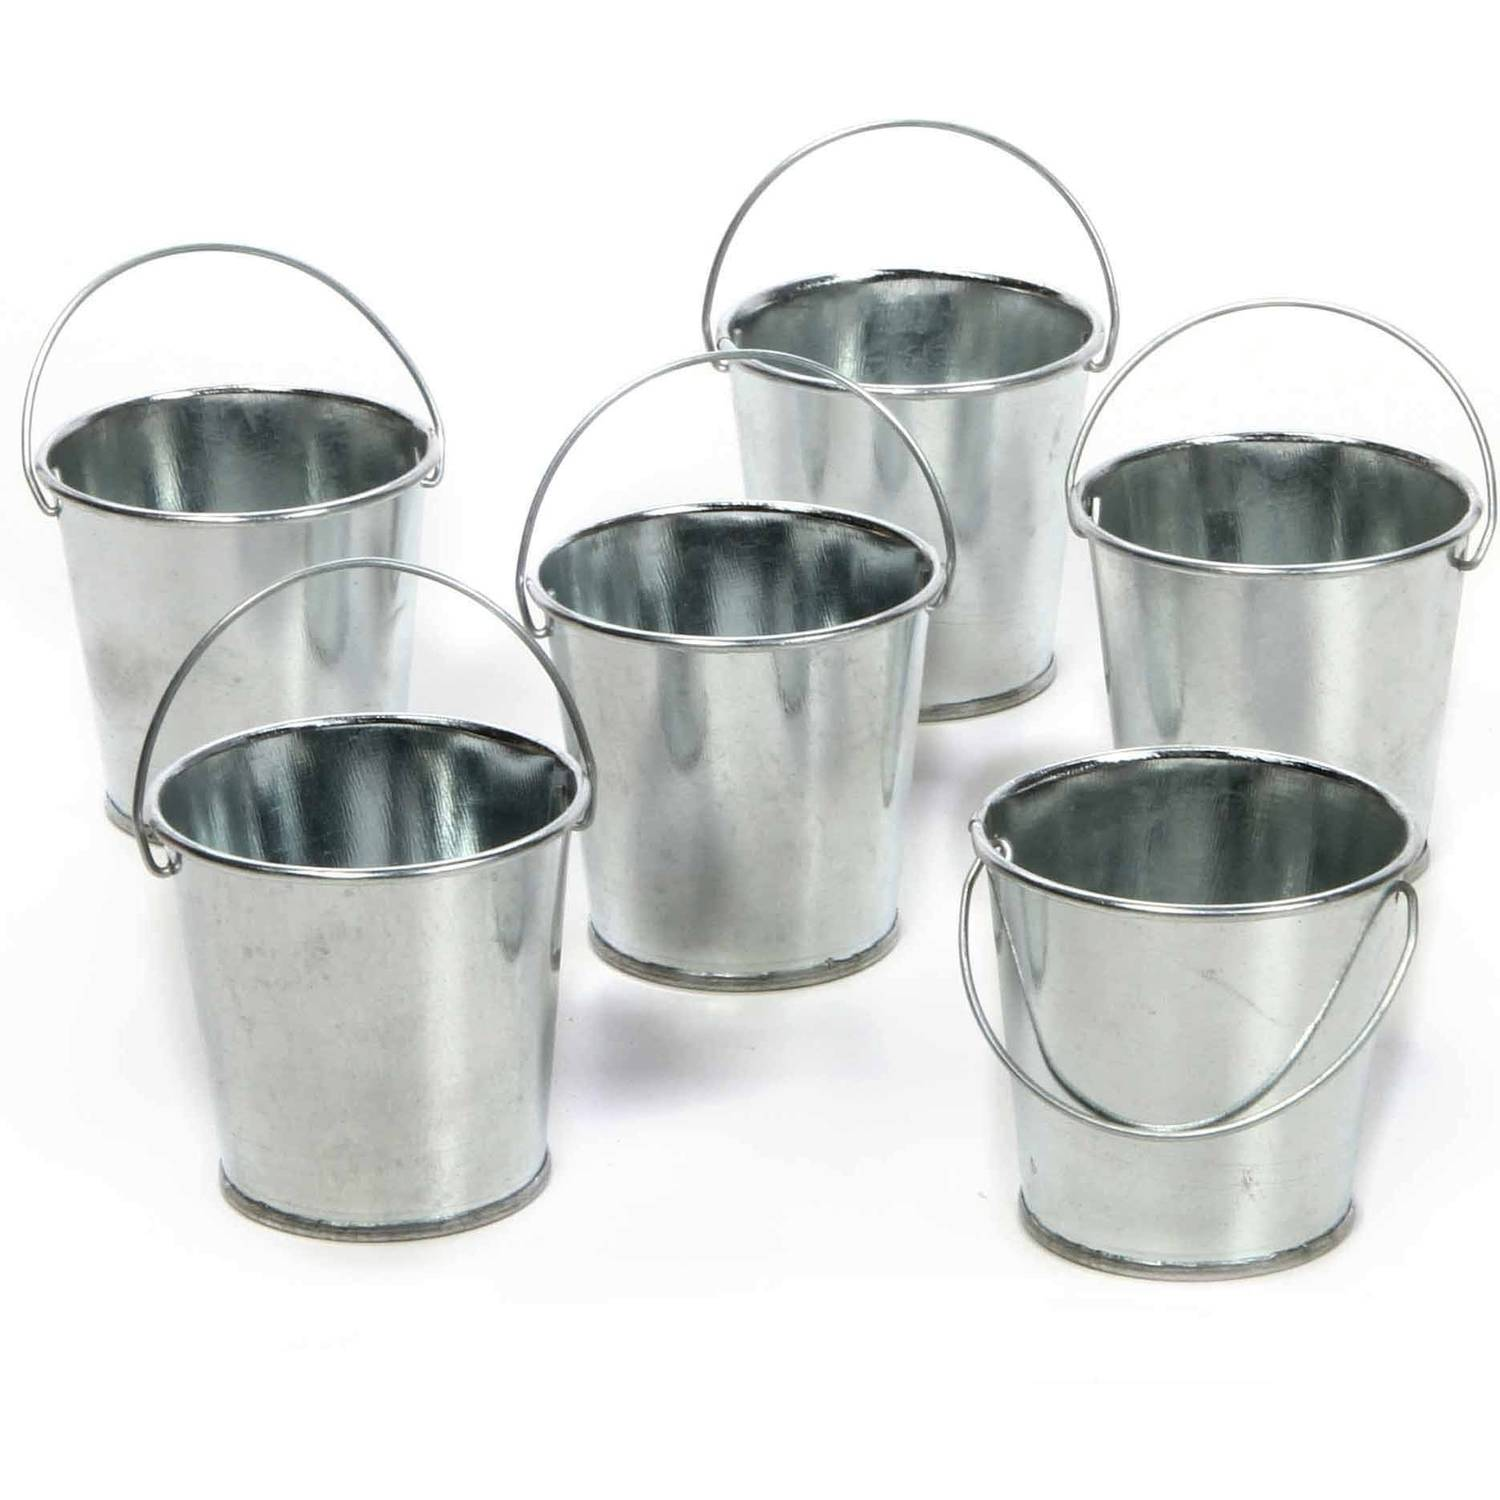 Elegant Expressions by Hosley Set of 6 Mini Galvanized Buckets